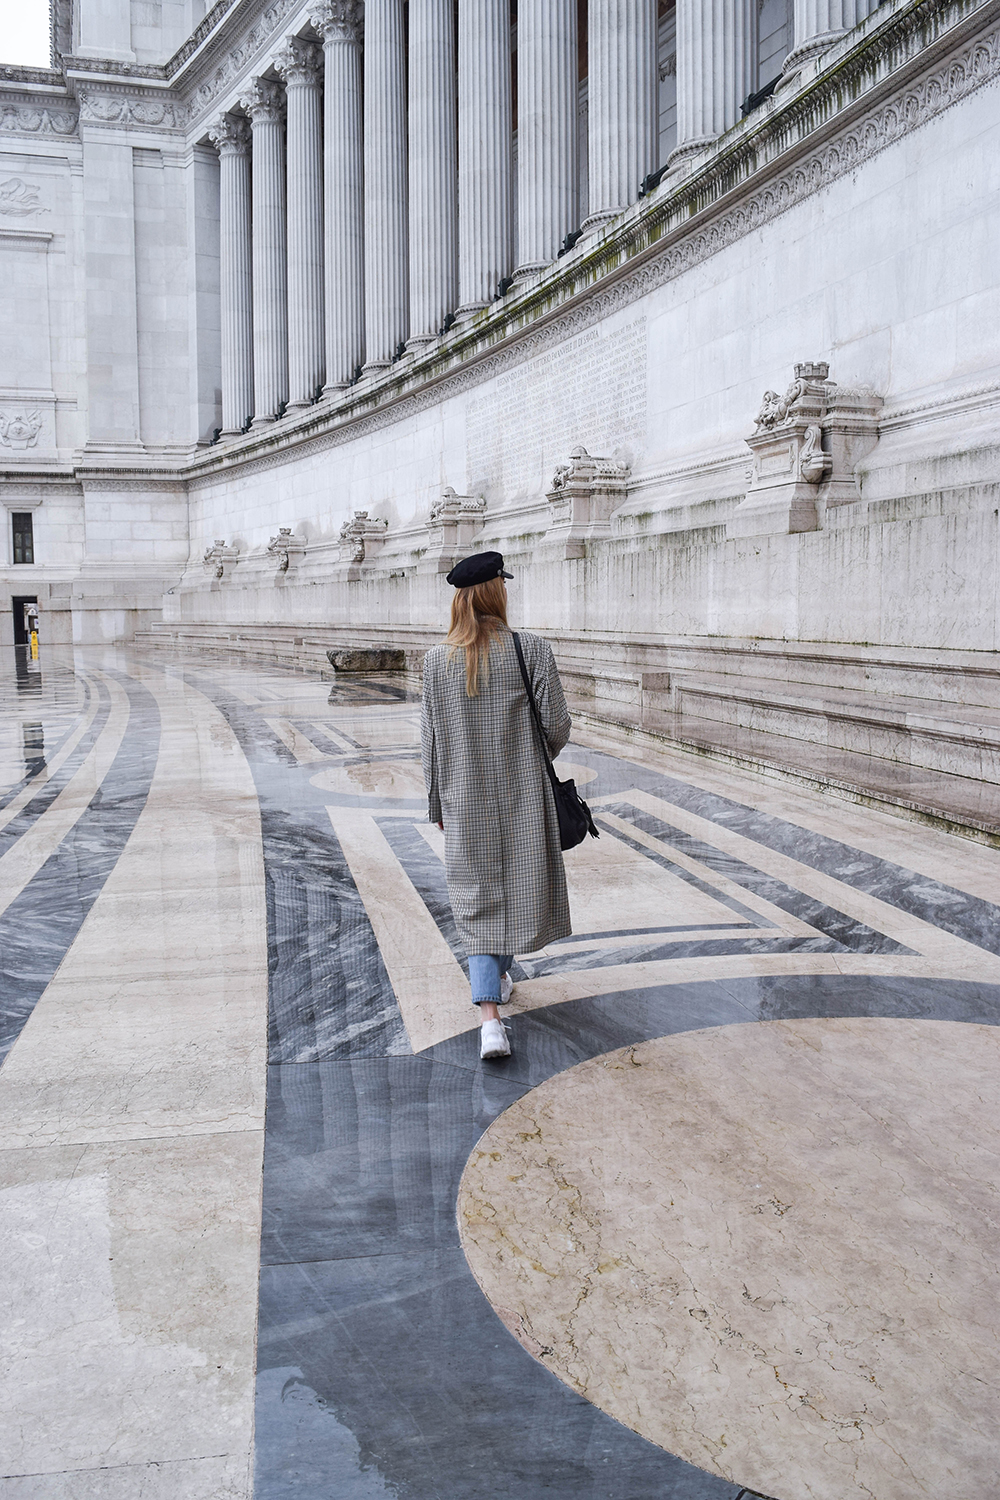 Girl with H&M checked coat in Vittorio Emanuele monument in Rome